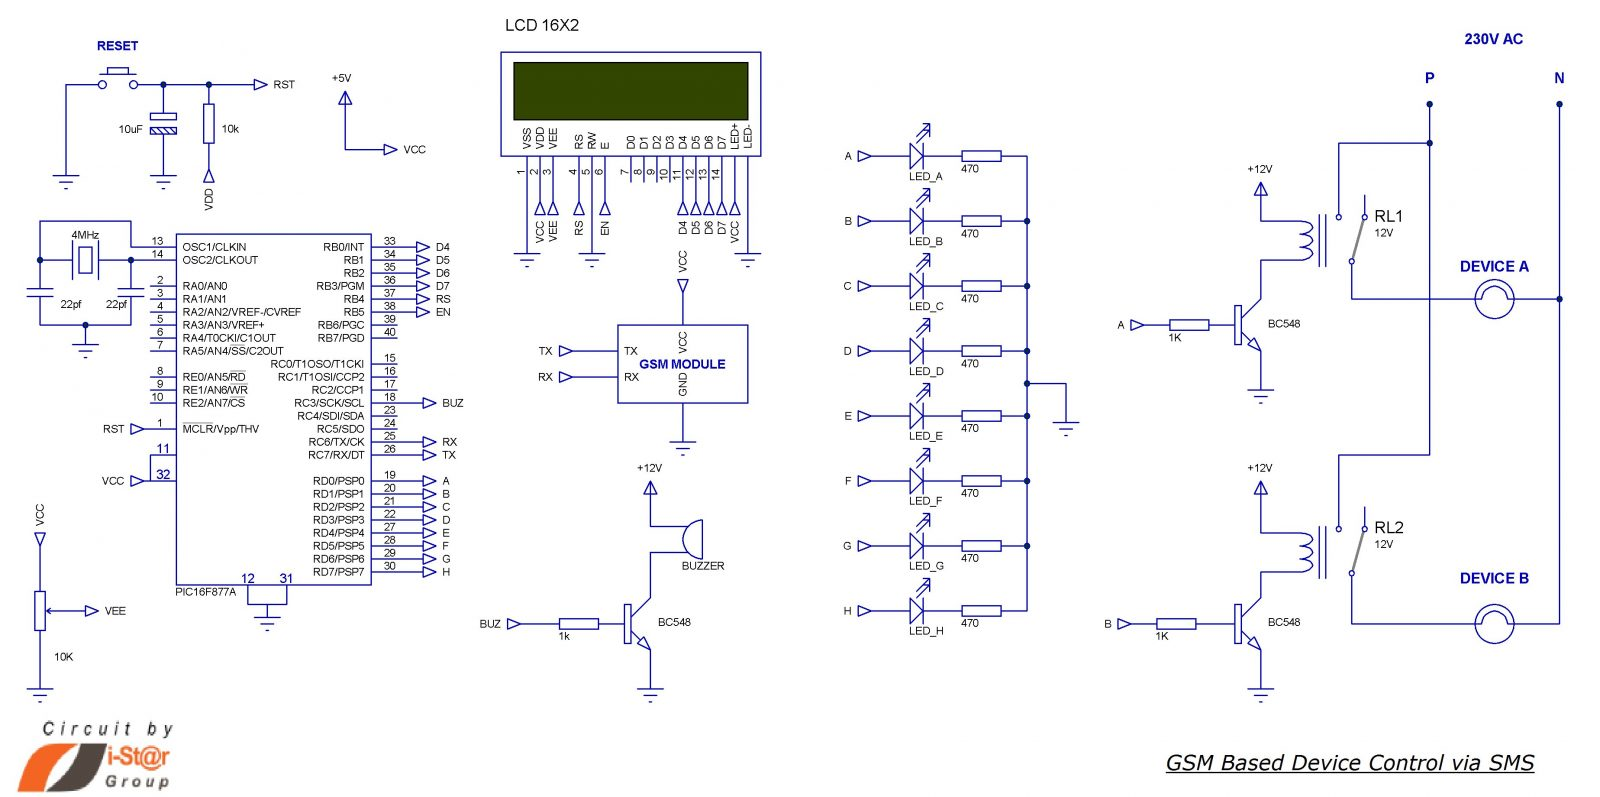 SMS Based Device Control using GSM Modem schematic